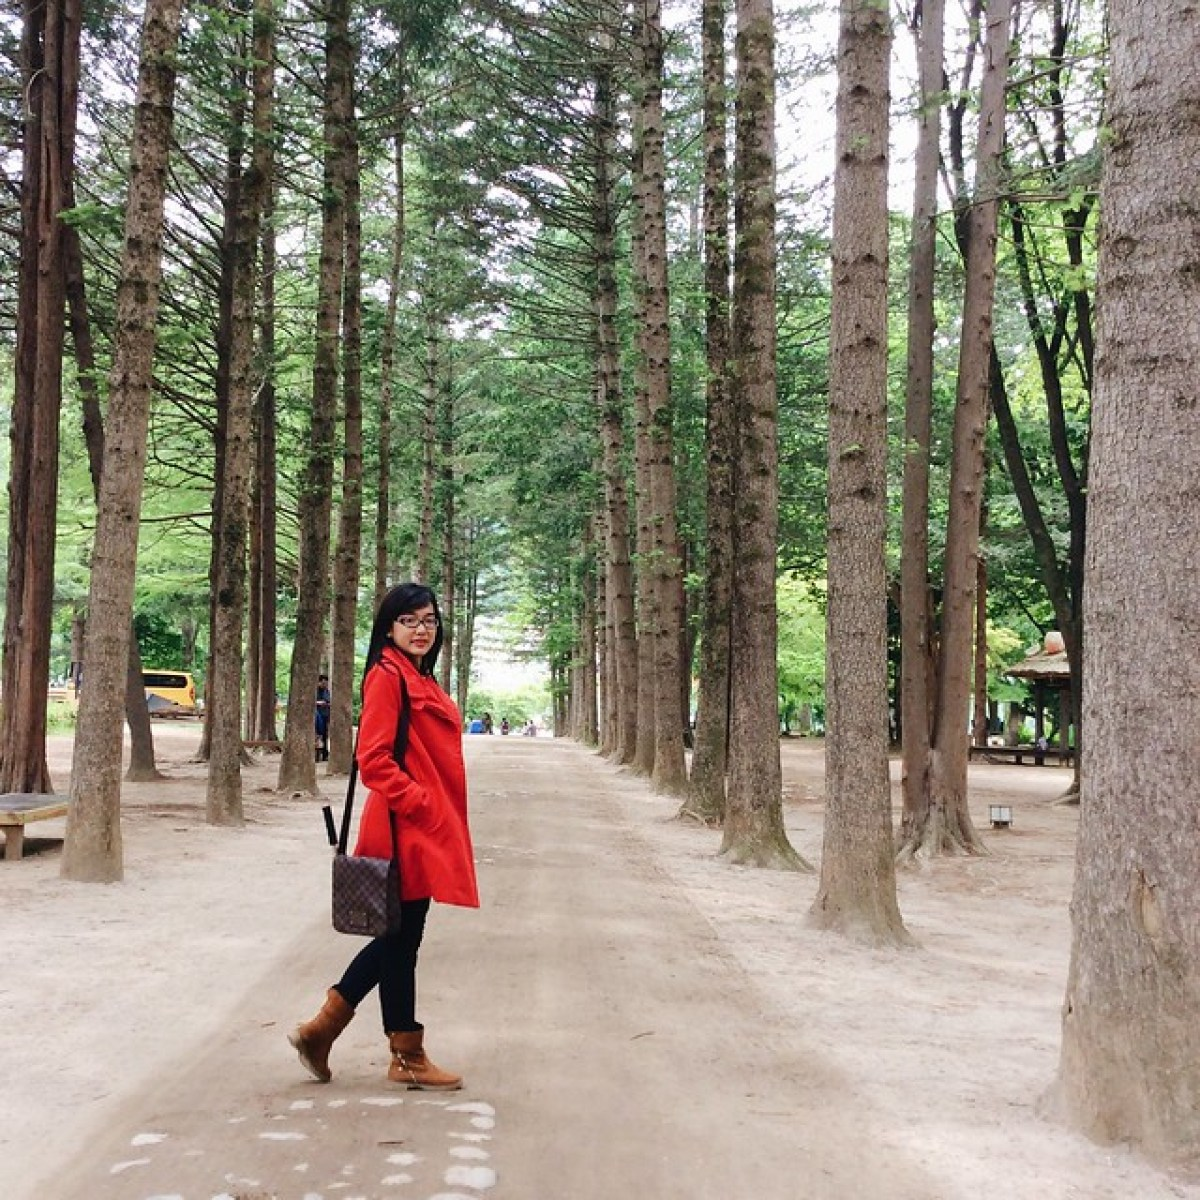 A girl in red coat between perfectly aligned pine trees